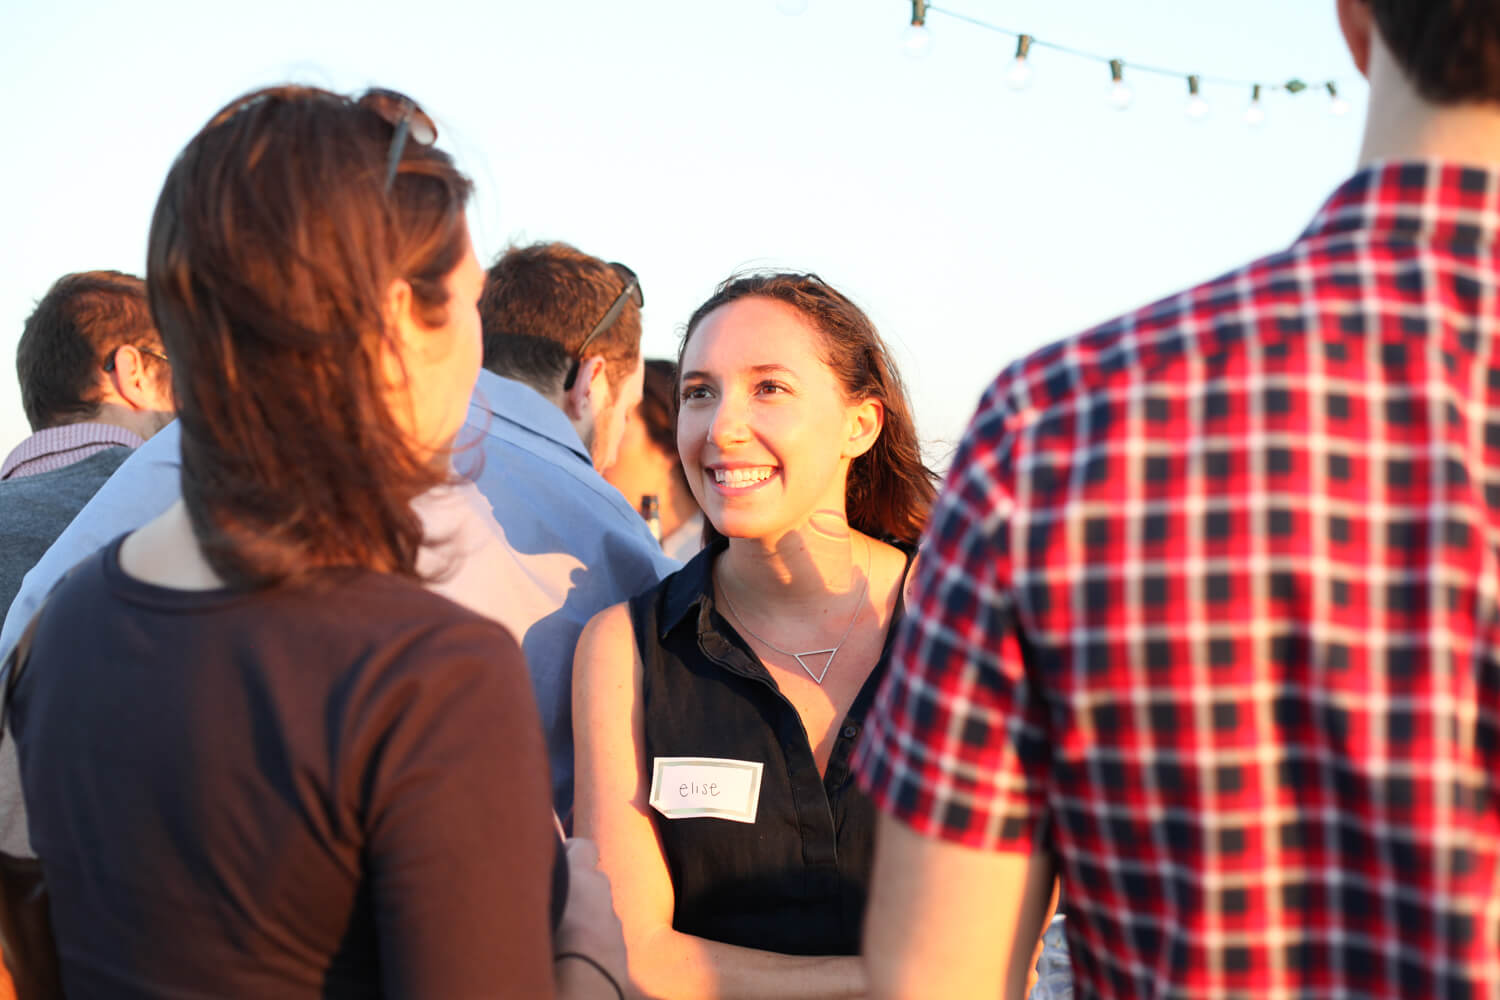 Chicago rooftop dinner party ideas